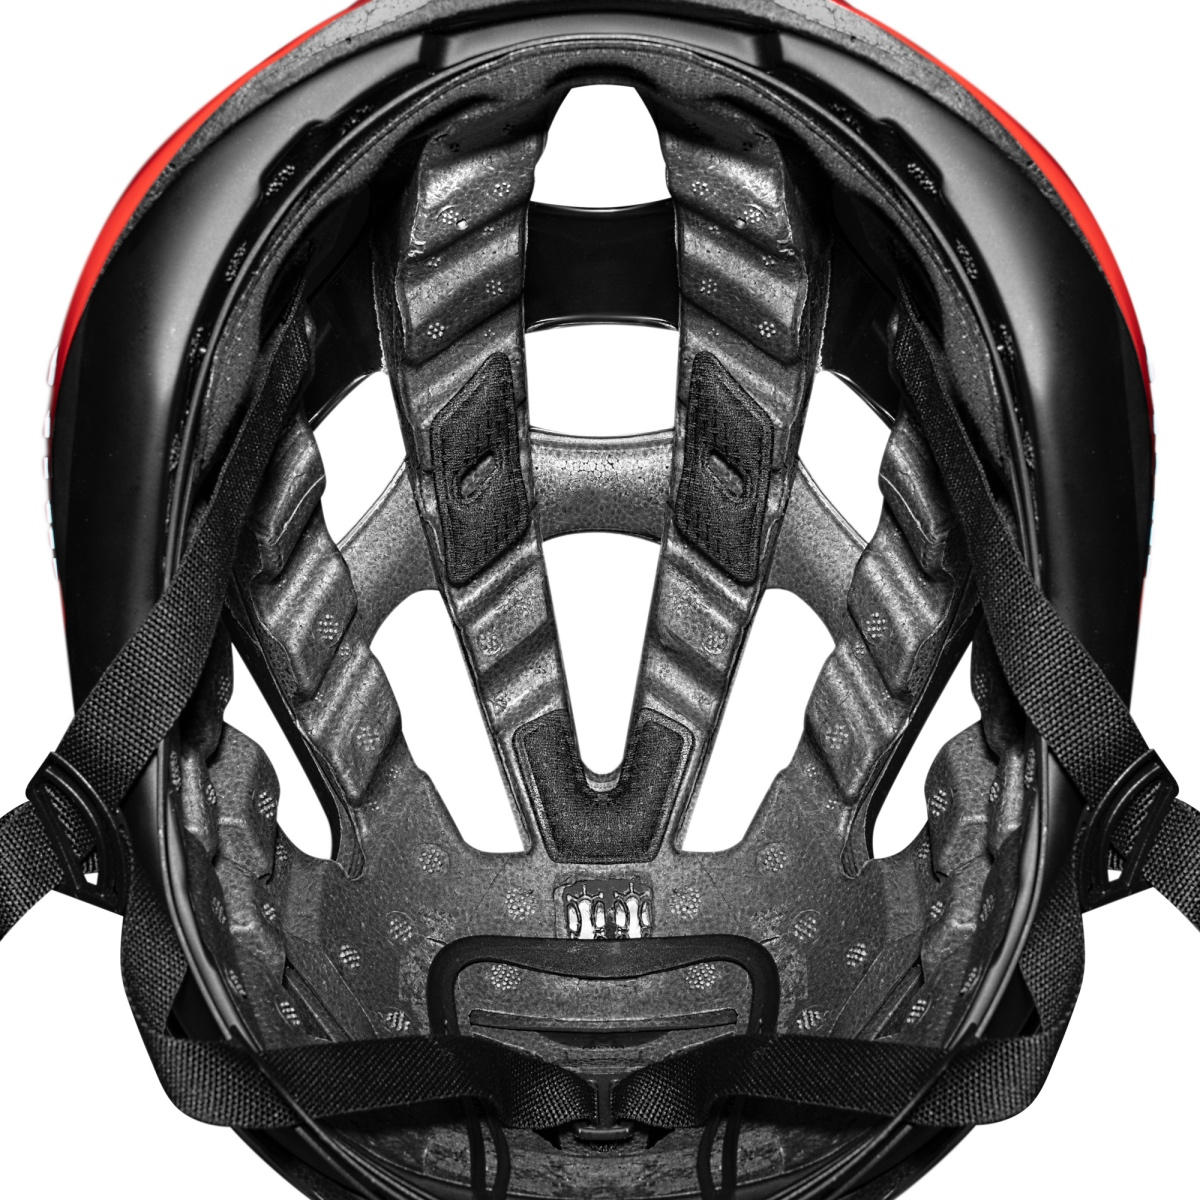 Giro Aether MIPS Spherical helmet launched